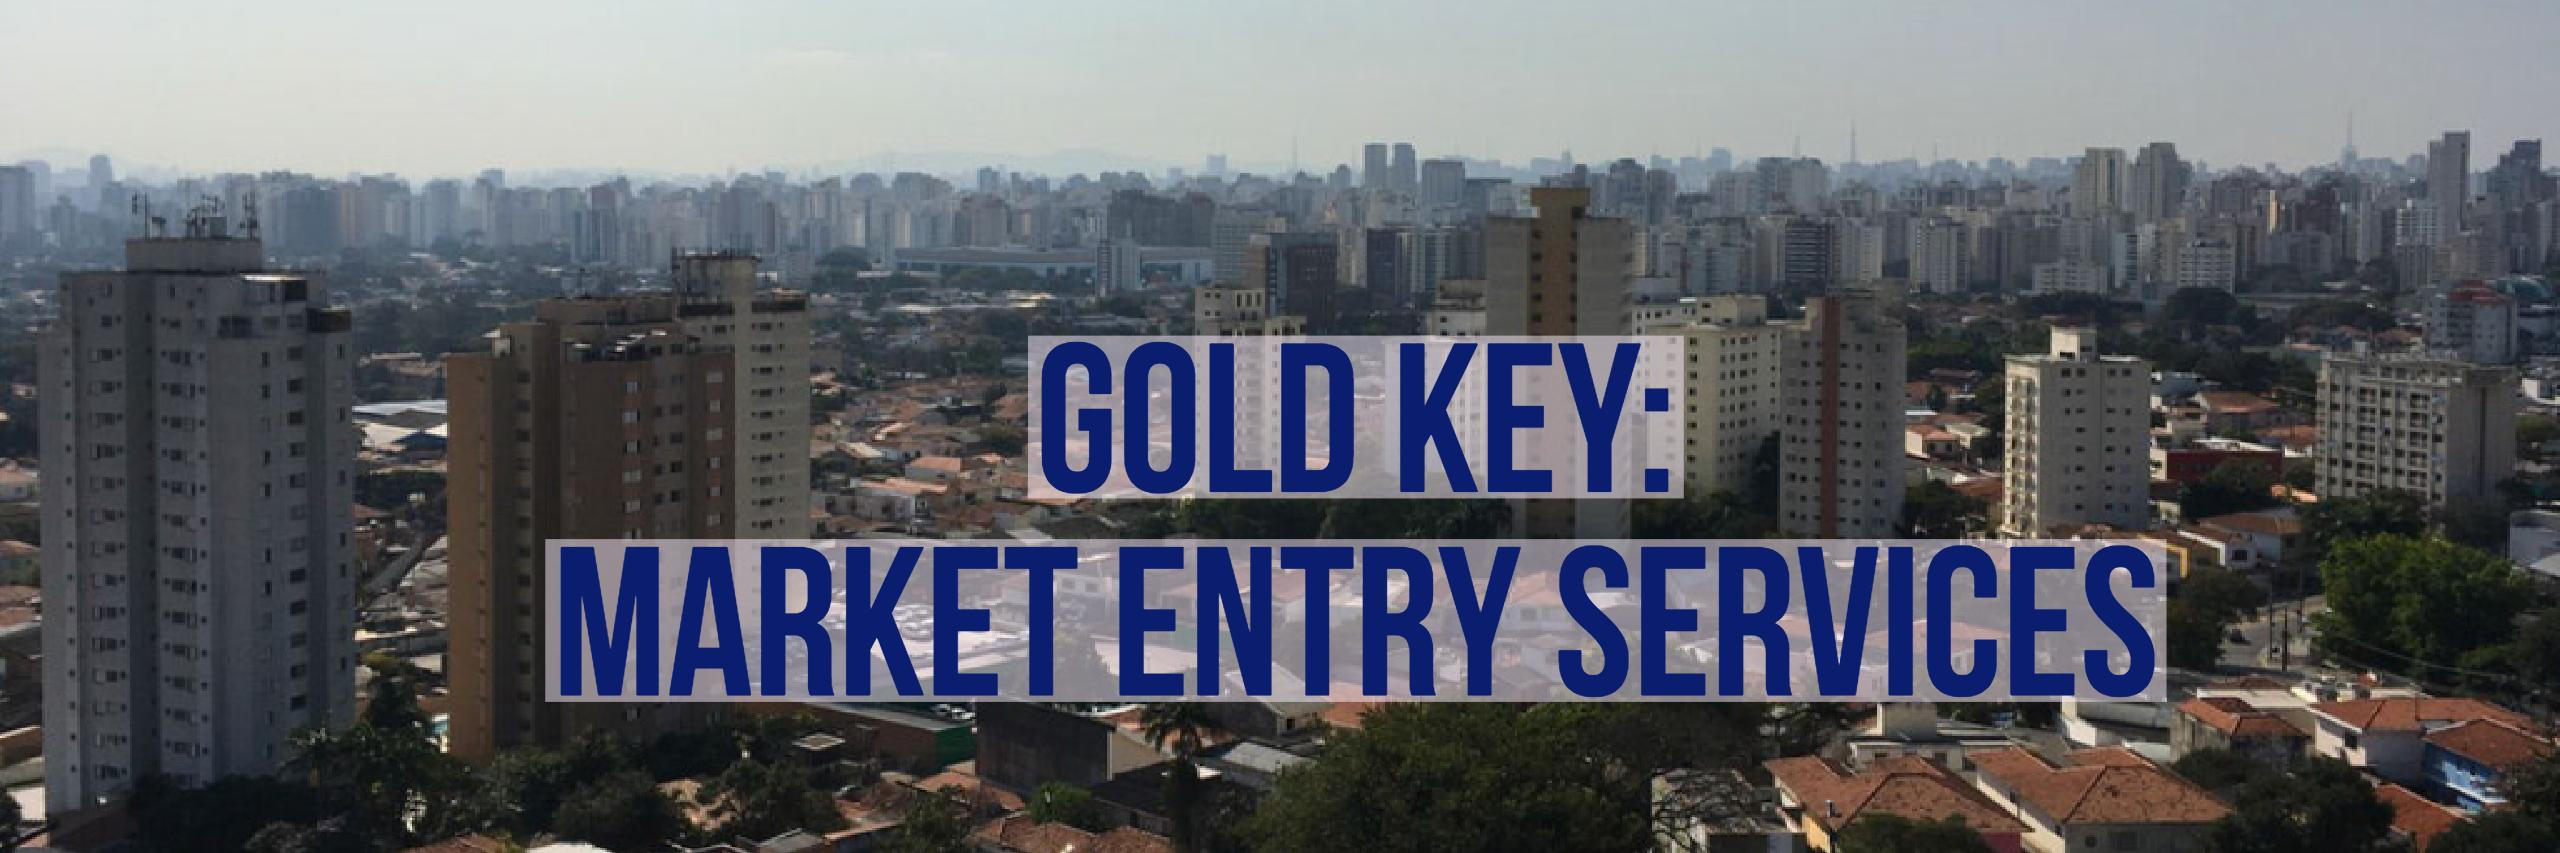 Gold Key: Market Entry Services from the U.S. Department of Commerce